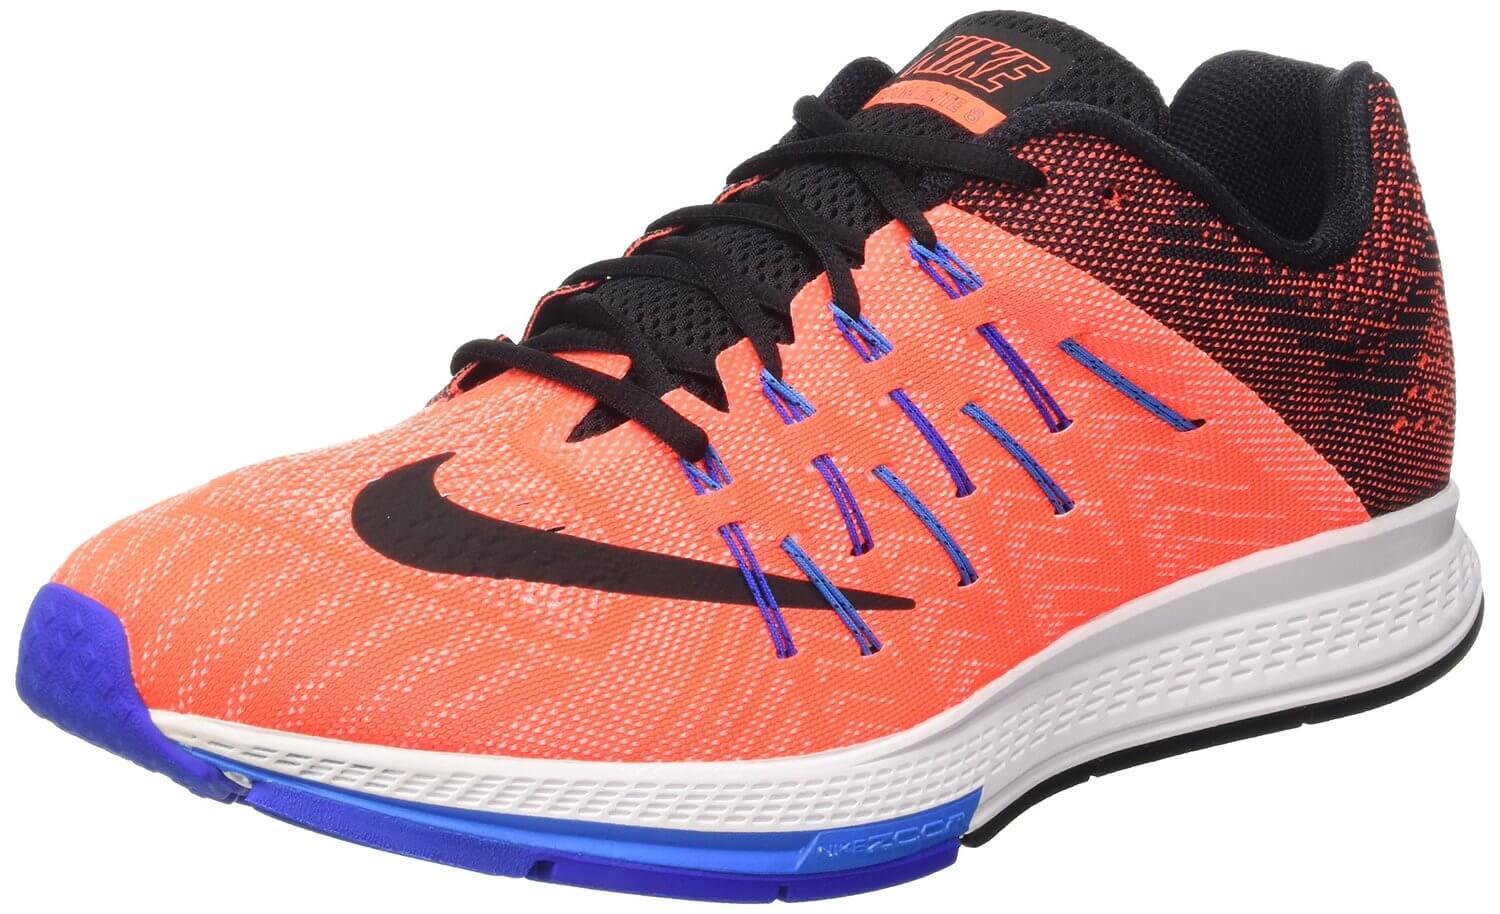 The Nike Air Zoom Elite 8 is one of the best performance training shoes on the market.